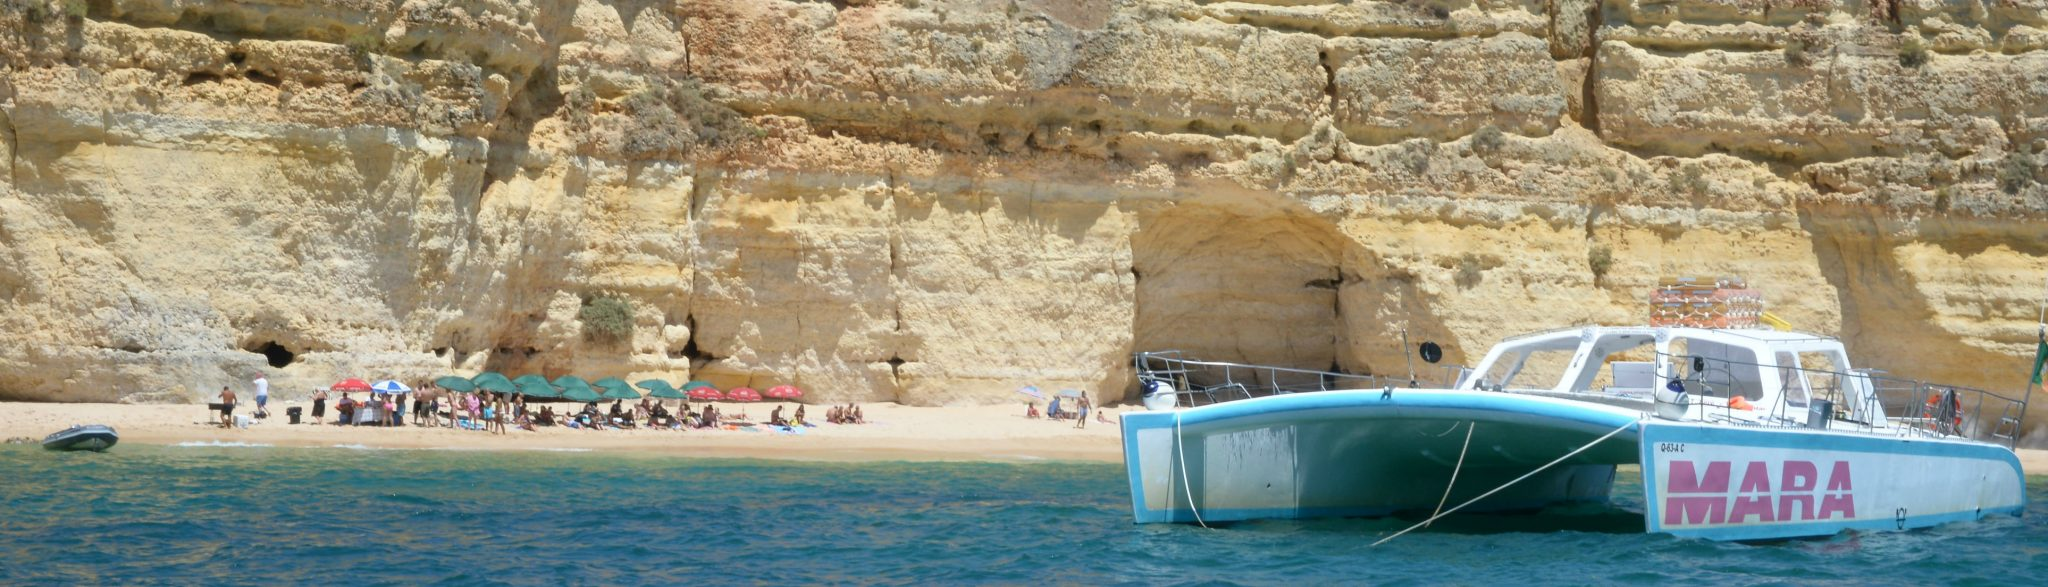 Bbq Cruise From Albufeira Seabookings